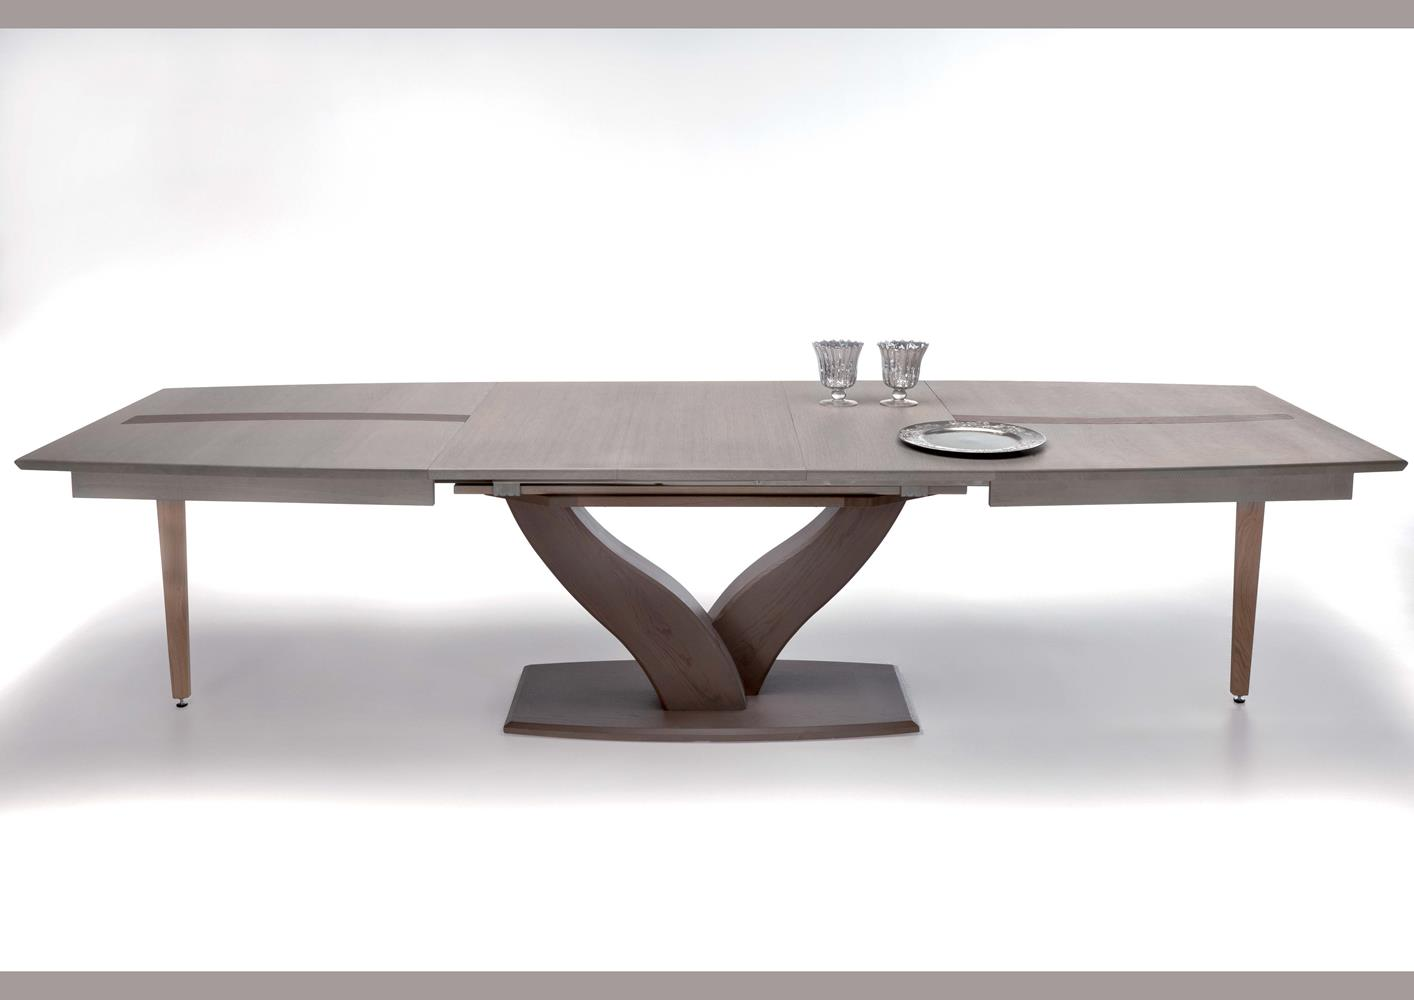 Table Pied Central Extensible Table Moderne Pied Central Y En Chêne Massif